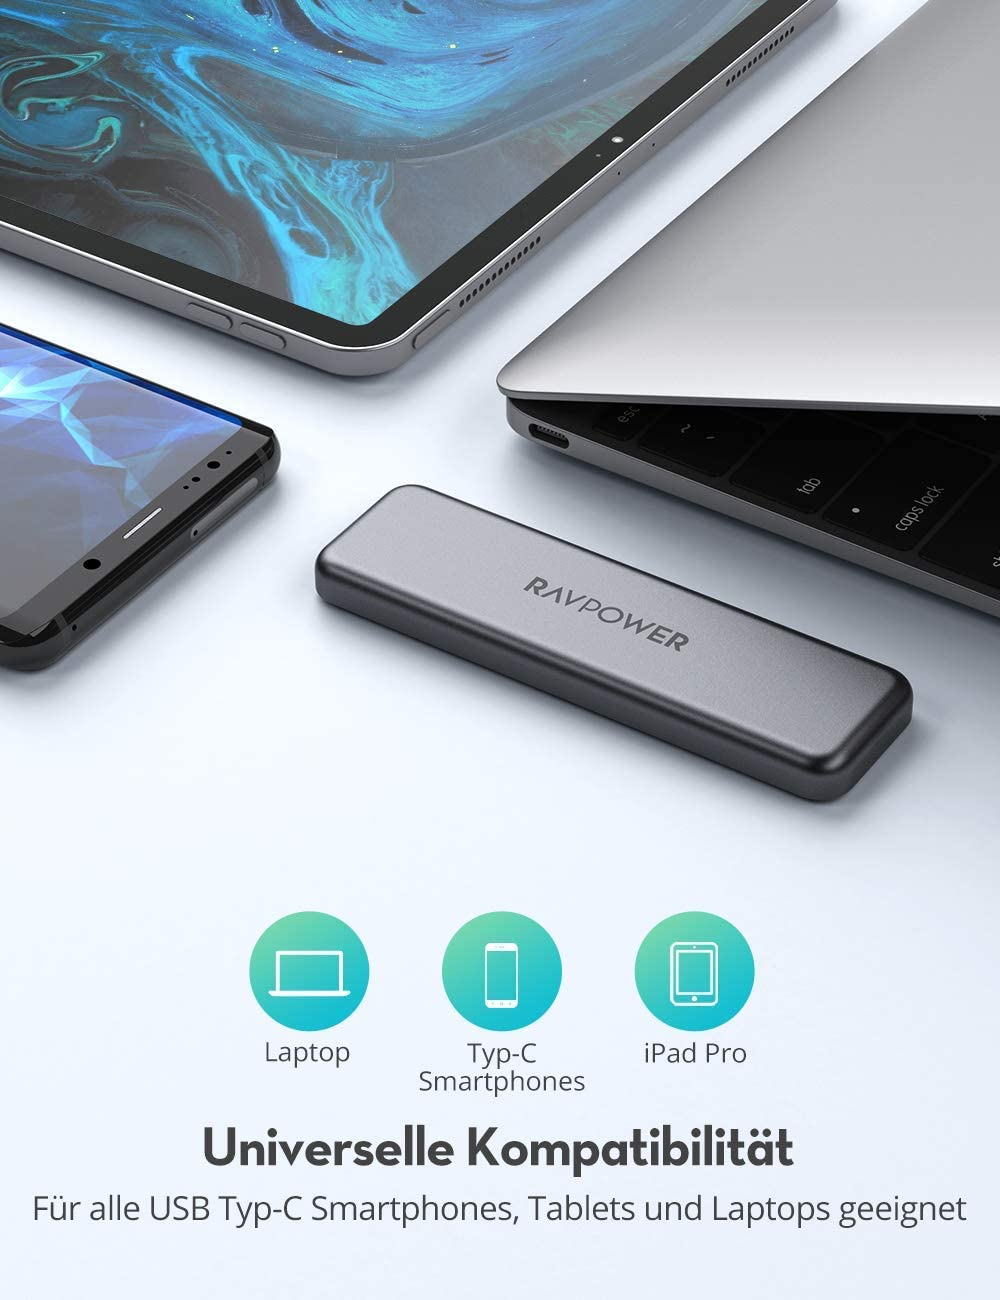 ATA Encryption USB 3.1 and NAND Flash RAVPower External SSD 512GB Portable Mini SSD Hard Drive Up to 540 MB//s 1M Shockproof 1T